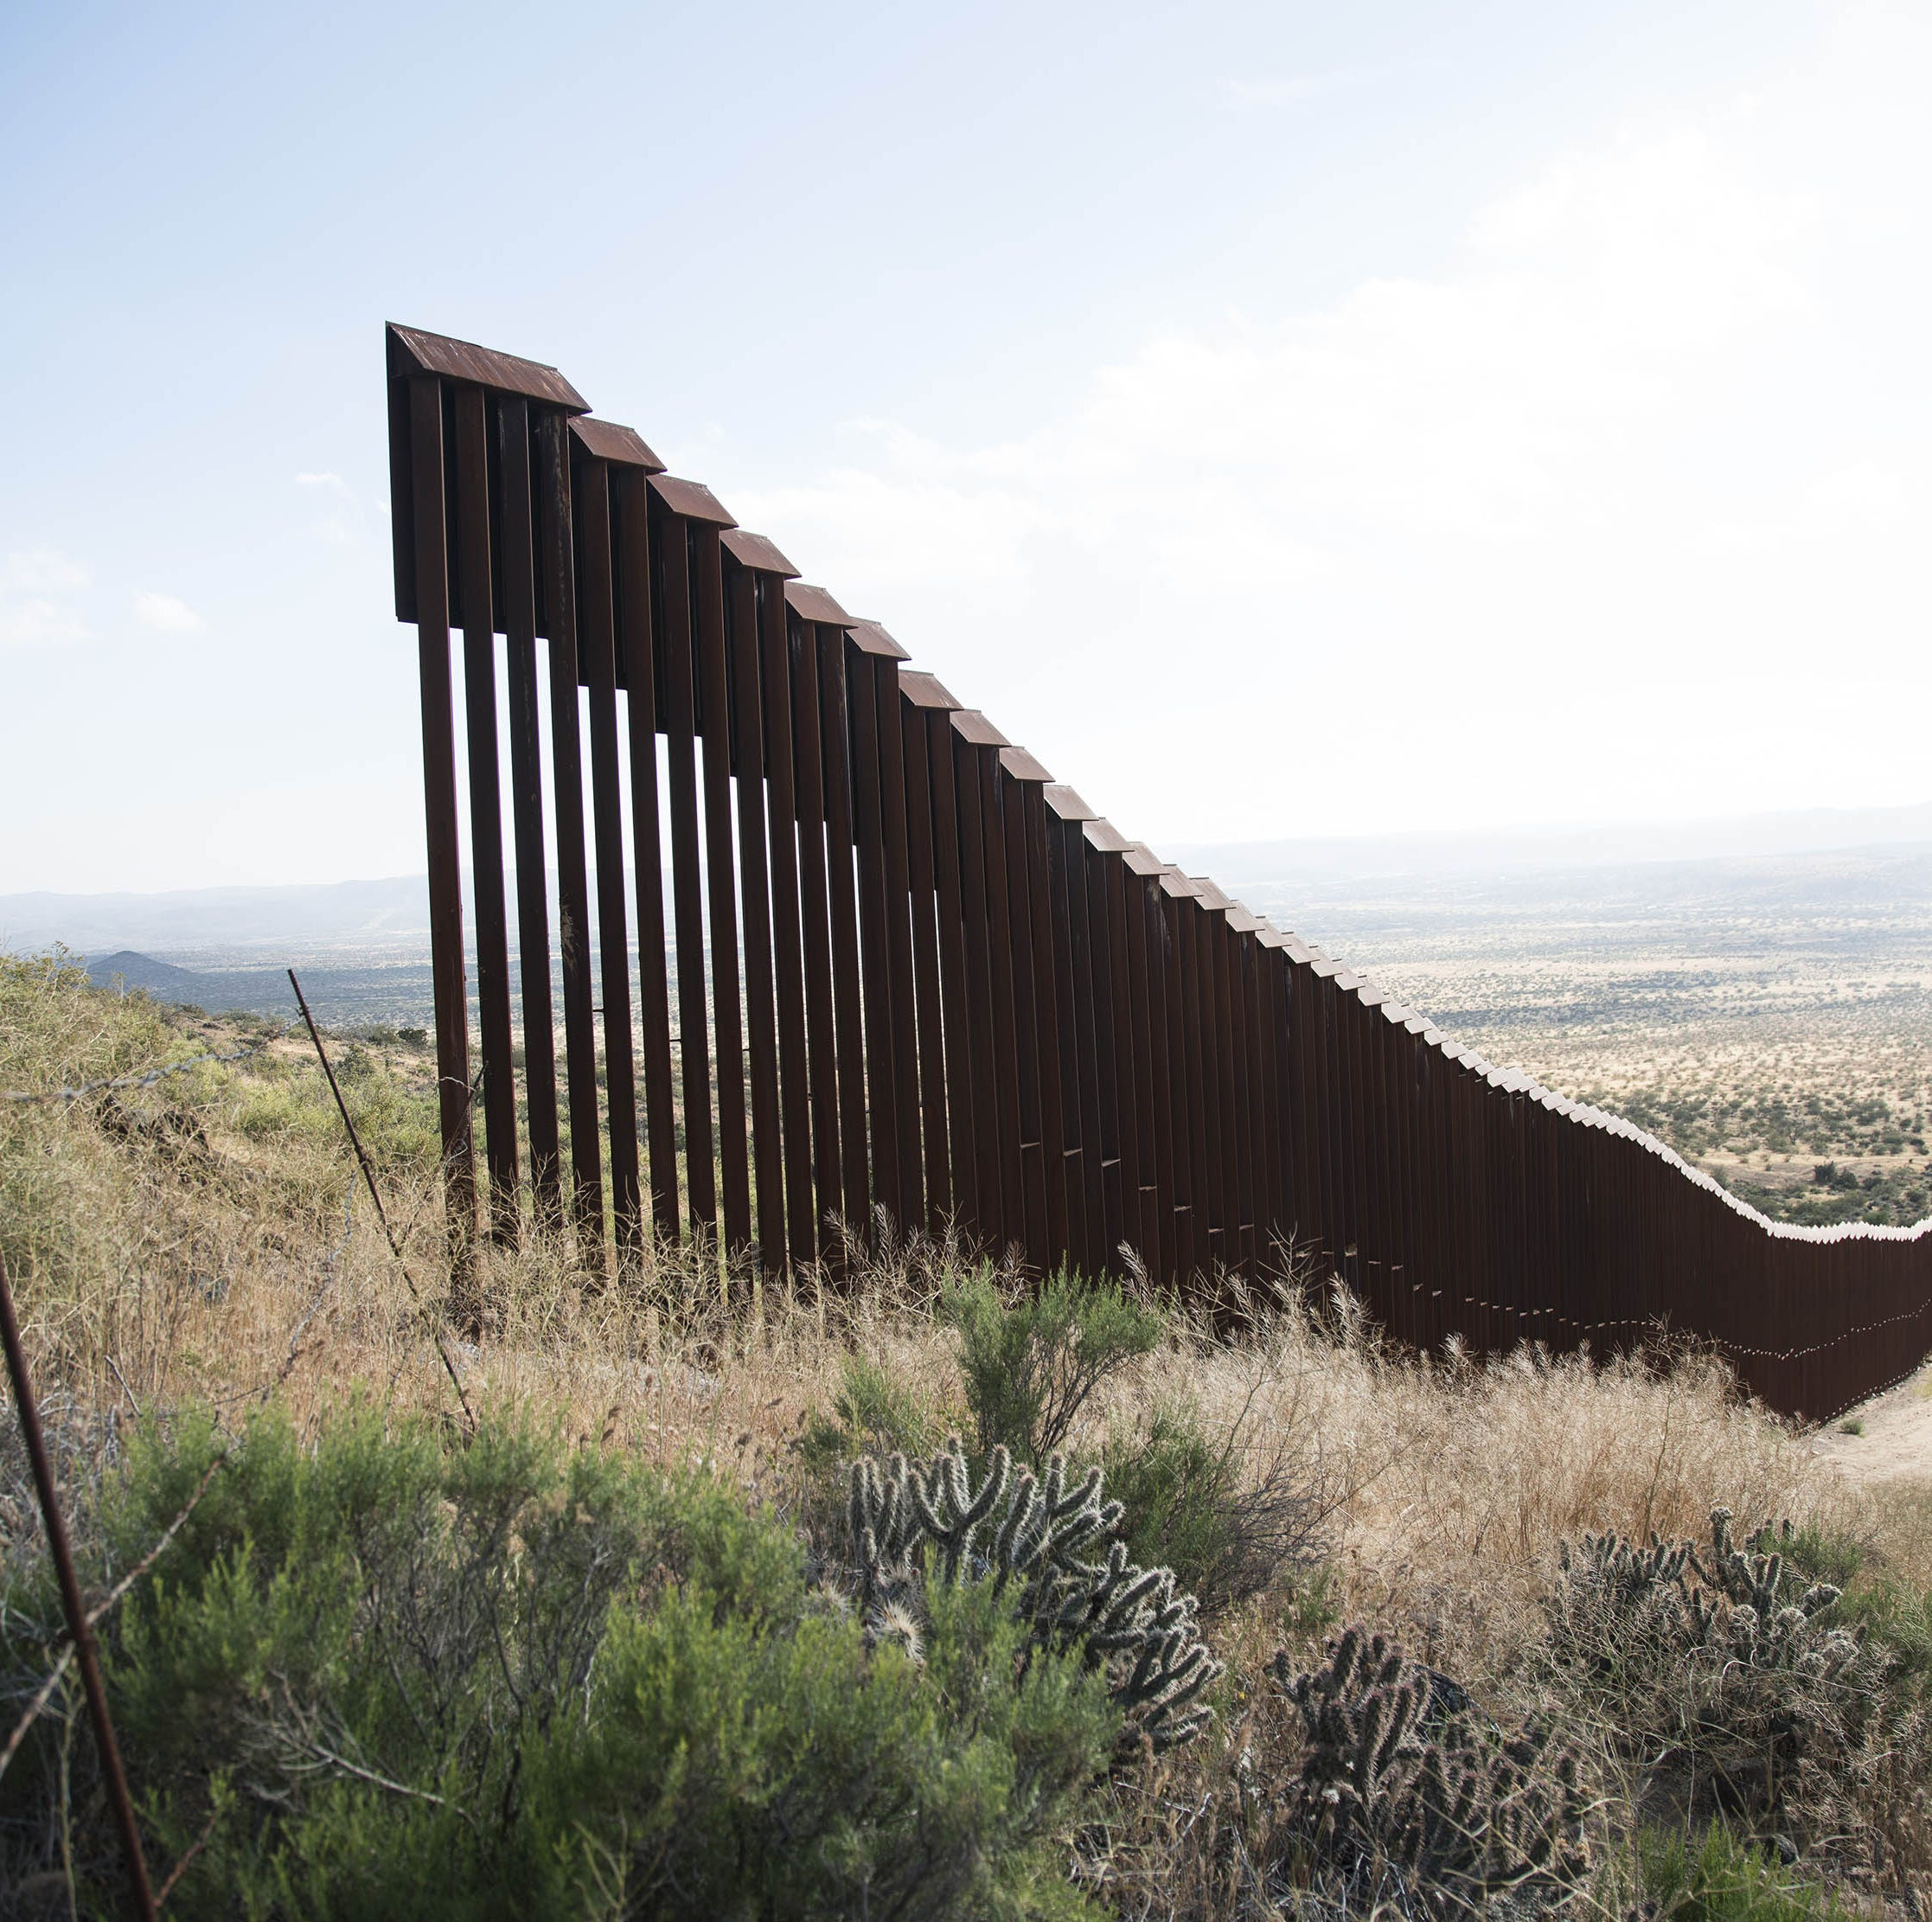 Gaps in the U.S.-Mexico border fence like this one near Jacumba, Calif., just east of San Diego, appear in places along the nearly 2,000-mile border, especially where the terrain begins to get rough.